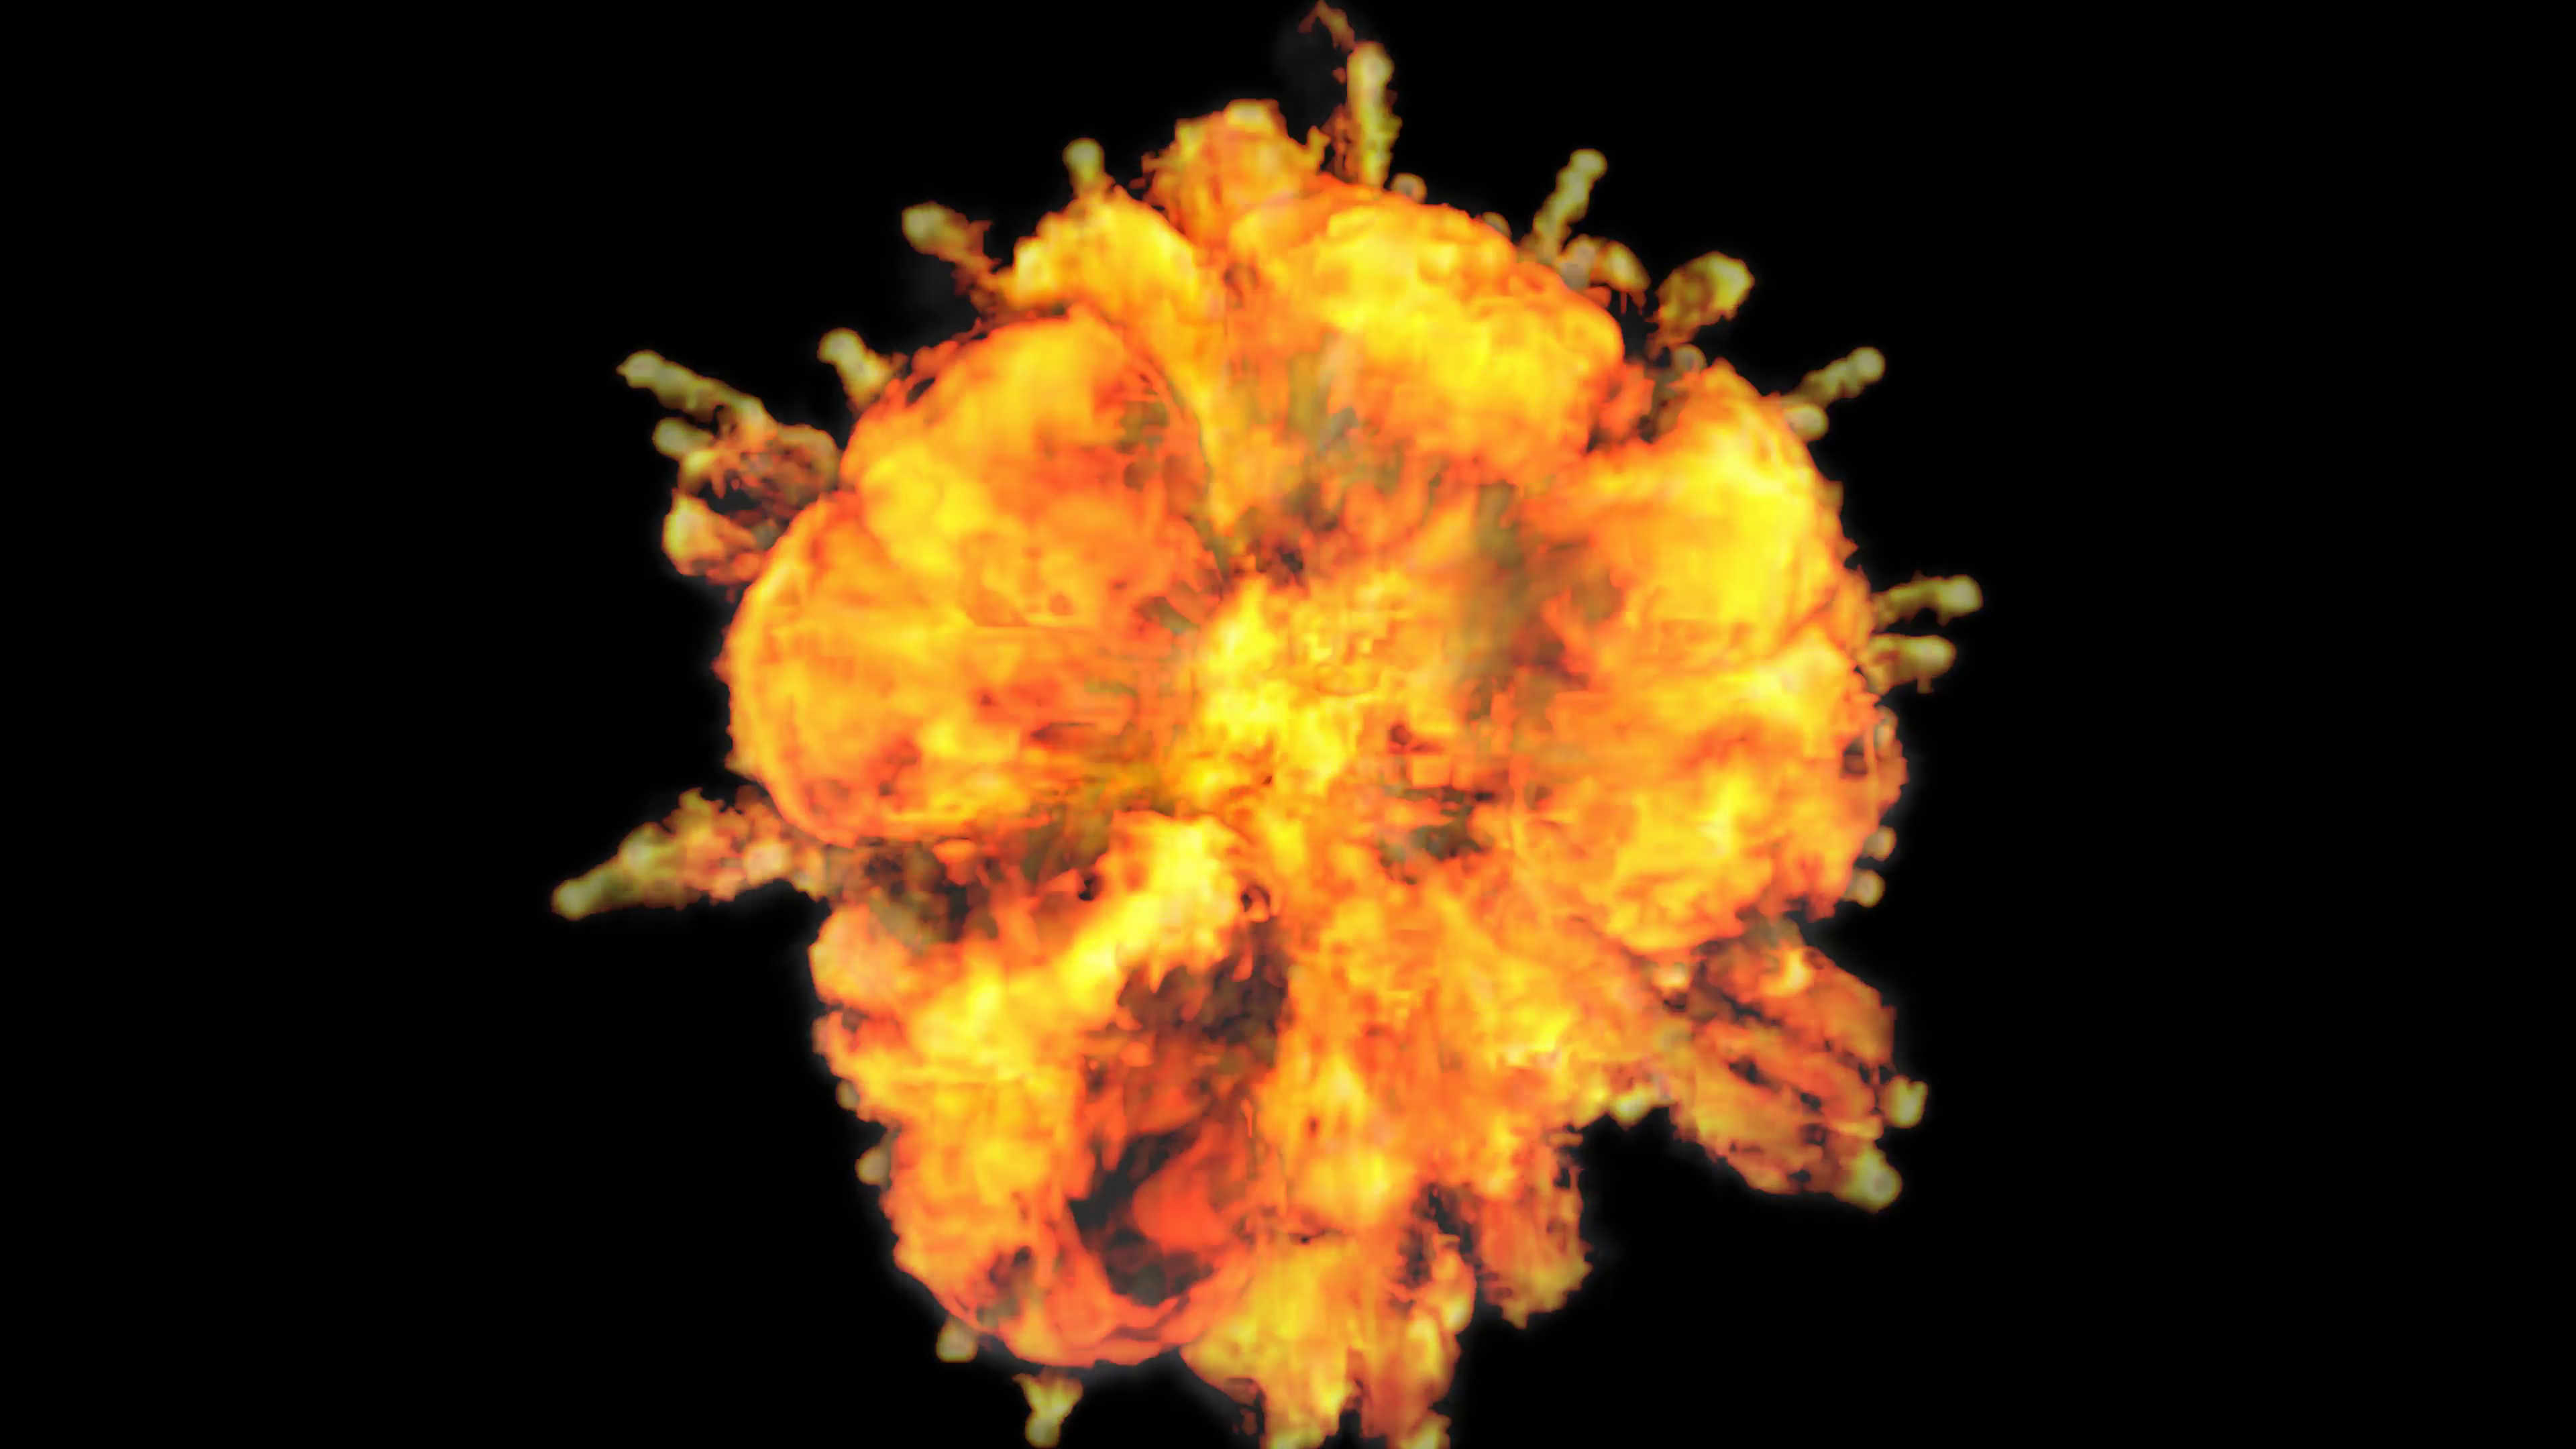 Animated erupting raging fire bursting through camera in 4k. Top view shot.  Alpha channel embedded with 4k PNG file. Motion Background.